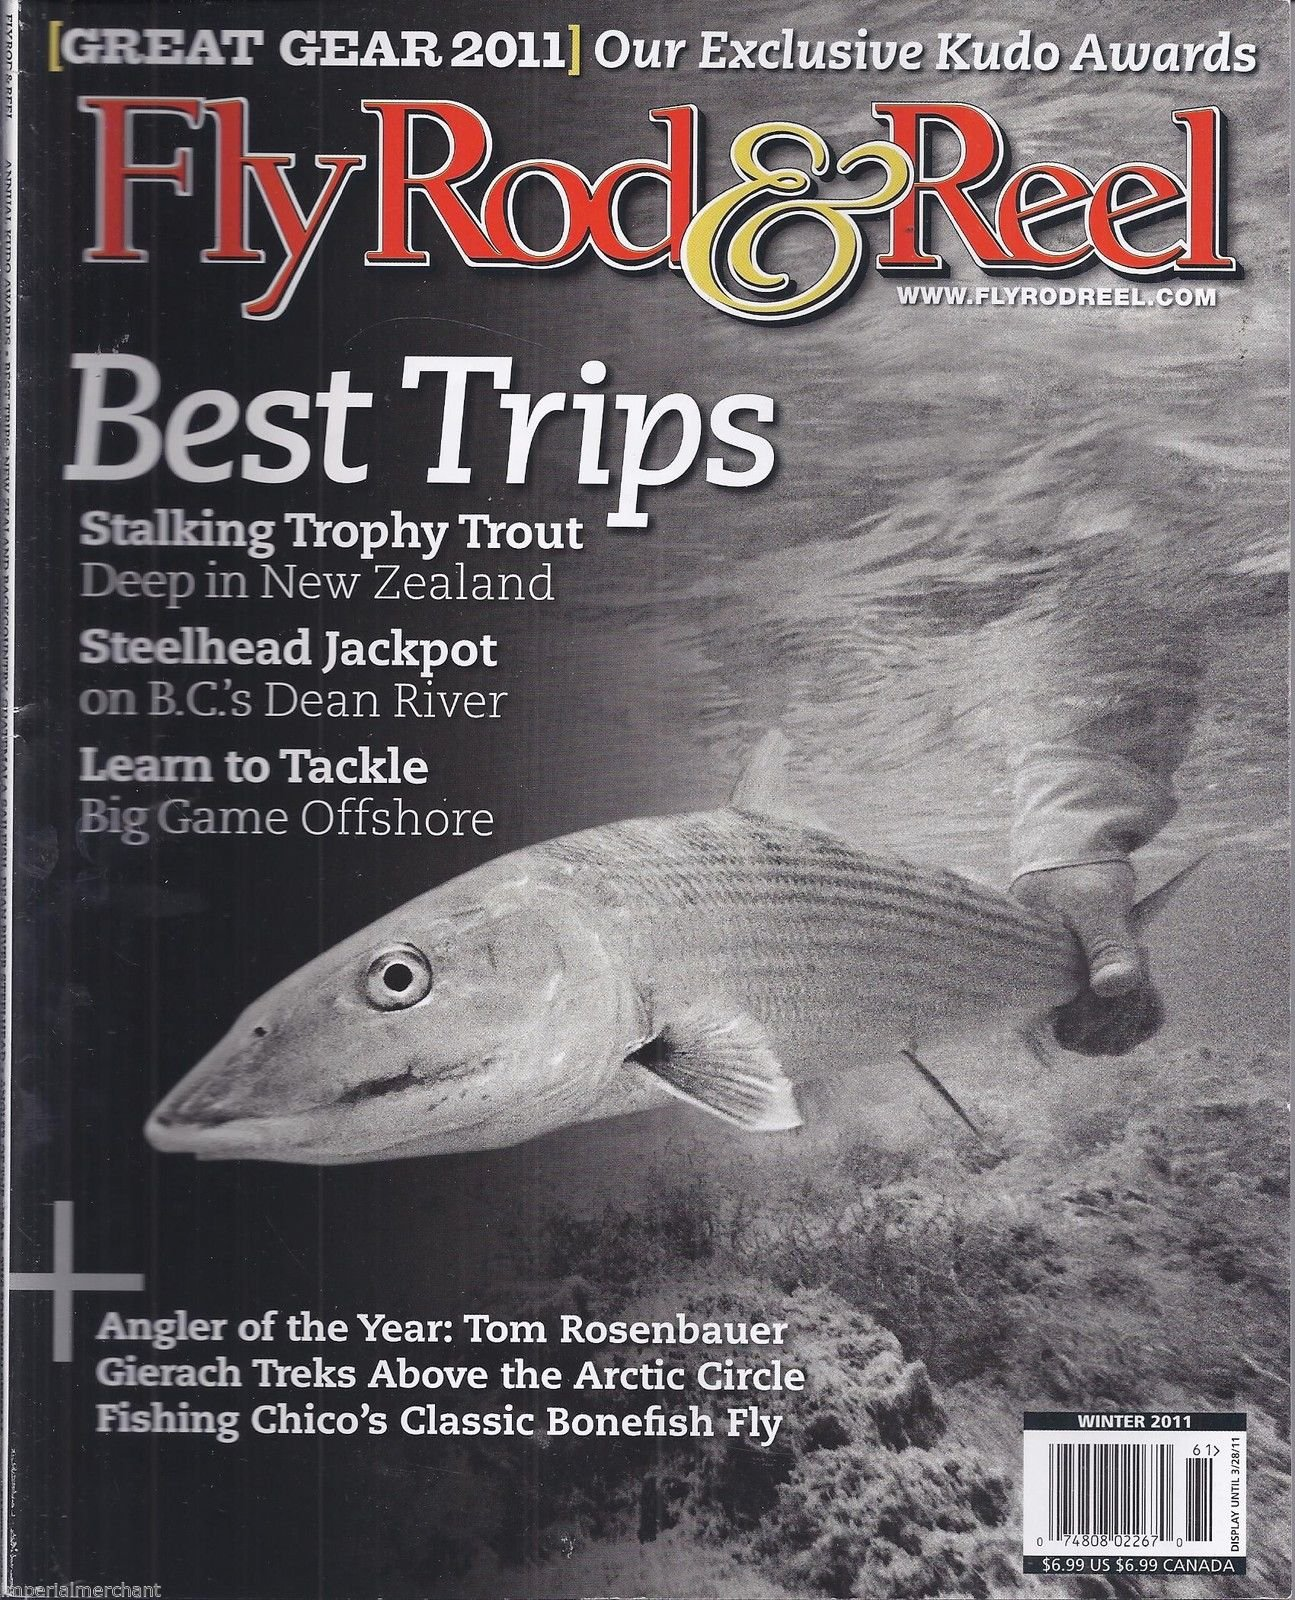 Download Fly Rod and Reel magazine Winter 2011 PDF